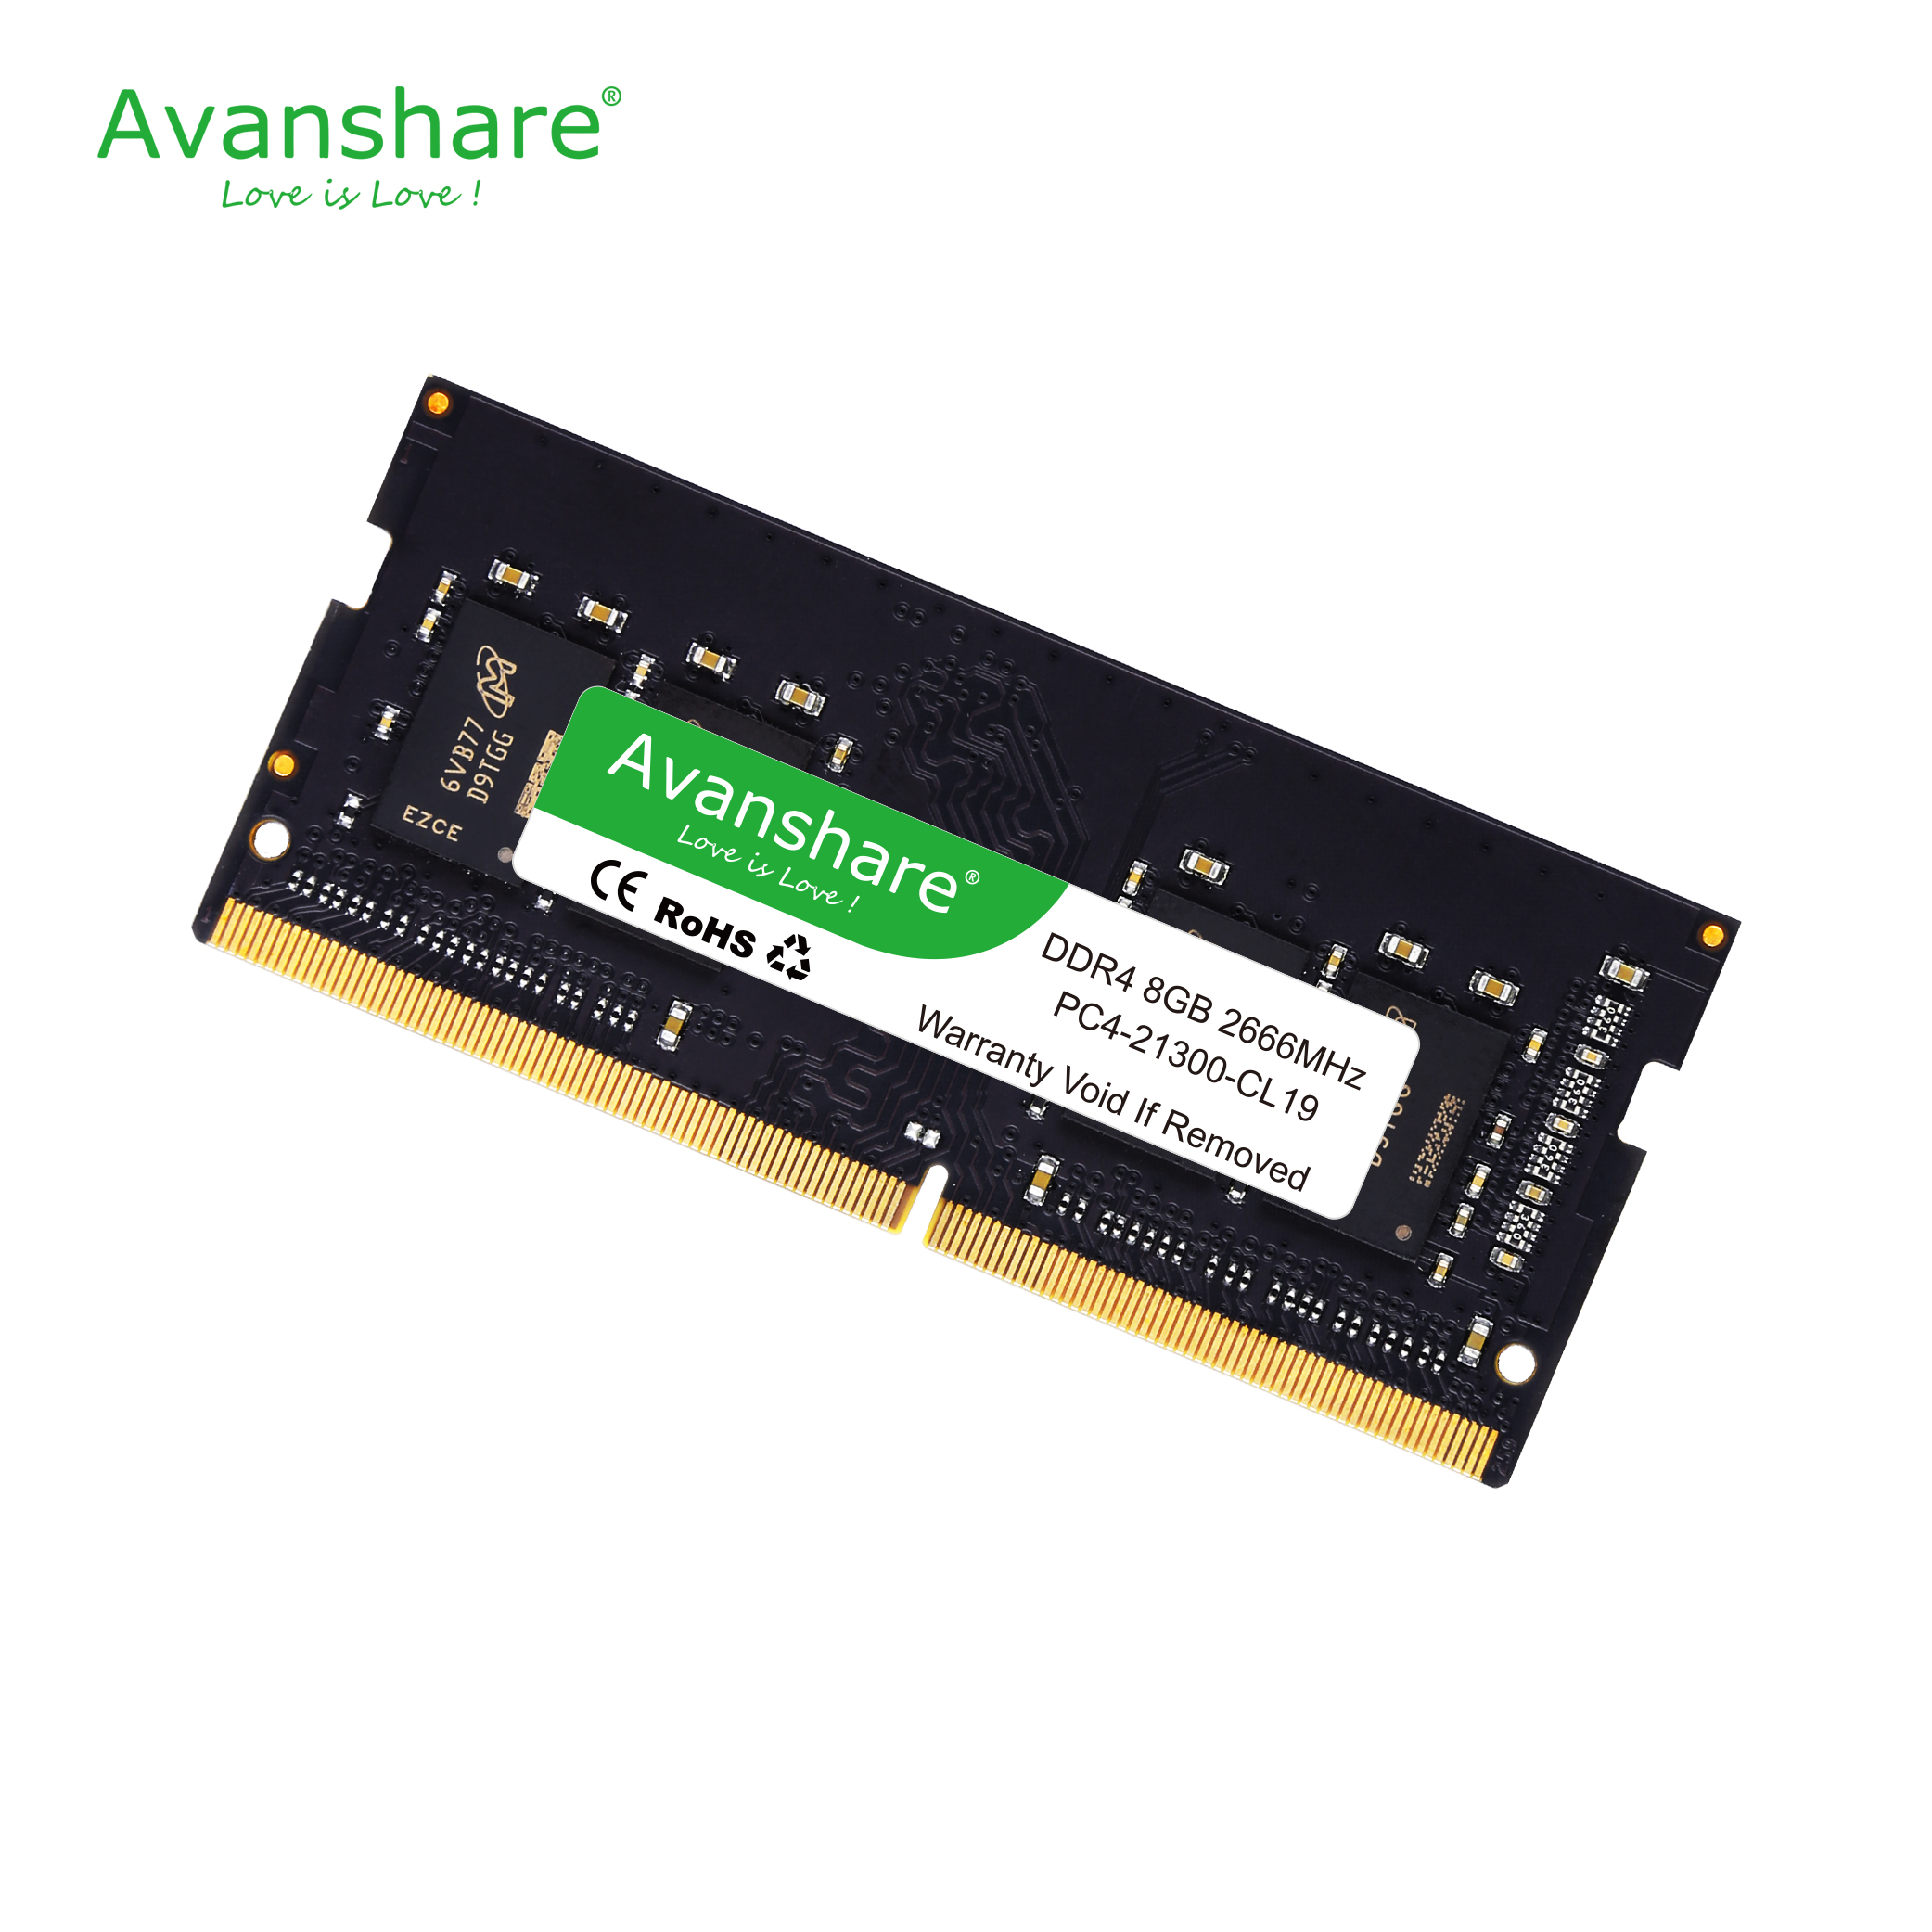 Avanshare <font><b>memoria</b></font> Ram <font><b>DDR4</b></font> 8GB 4GB <font><b>16GB</b></font> 2400mhz 2666mhz sodimm <font><b>notebook</b></font> high performance laptop memory image